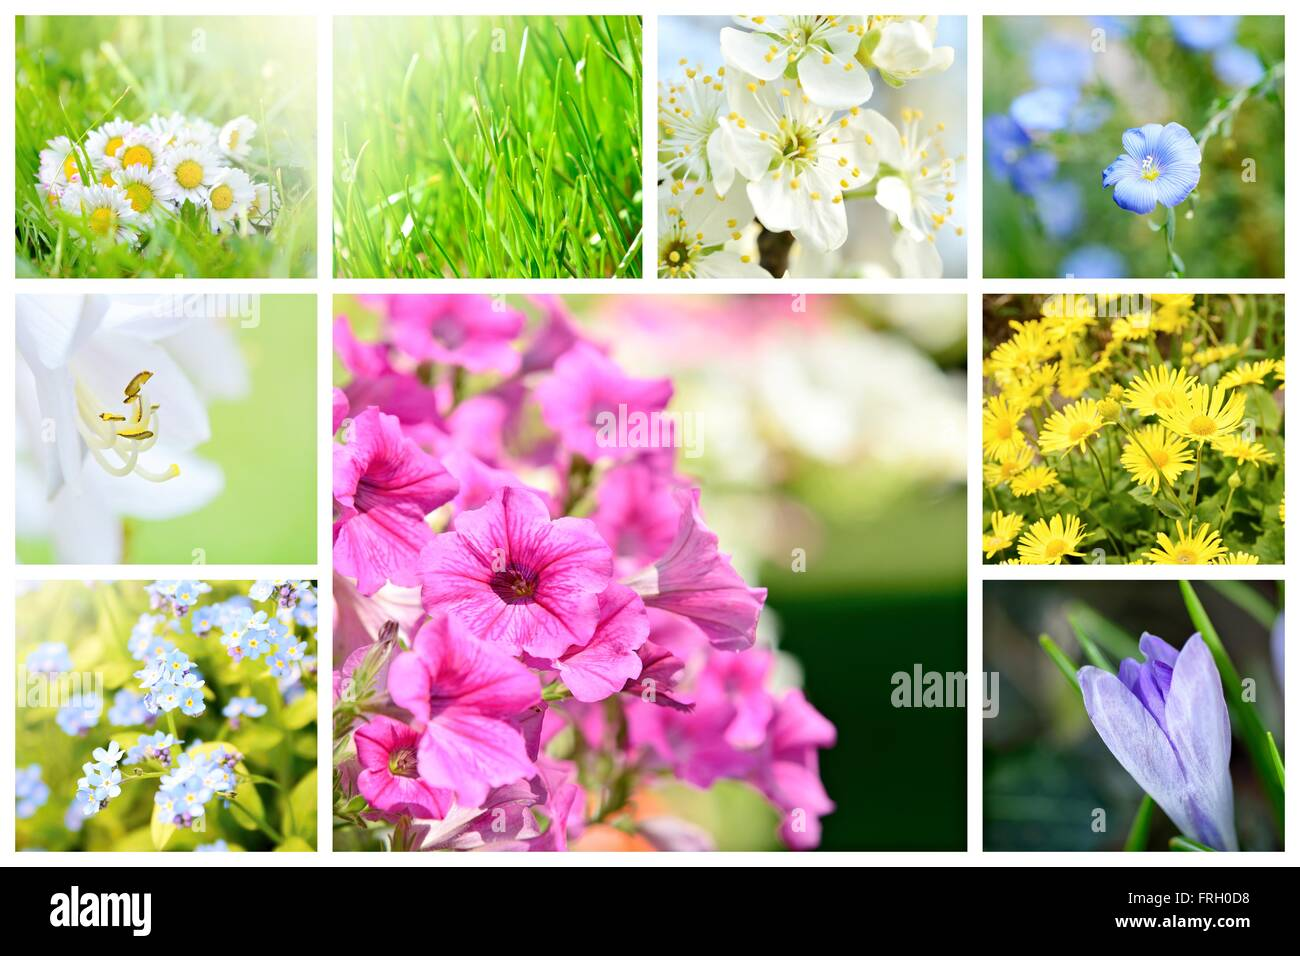 Spring Natural Abstract Collage With Plants And Flowers In Garden A